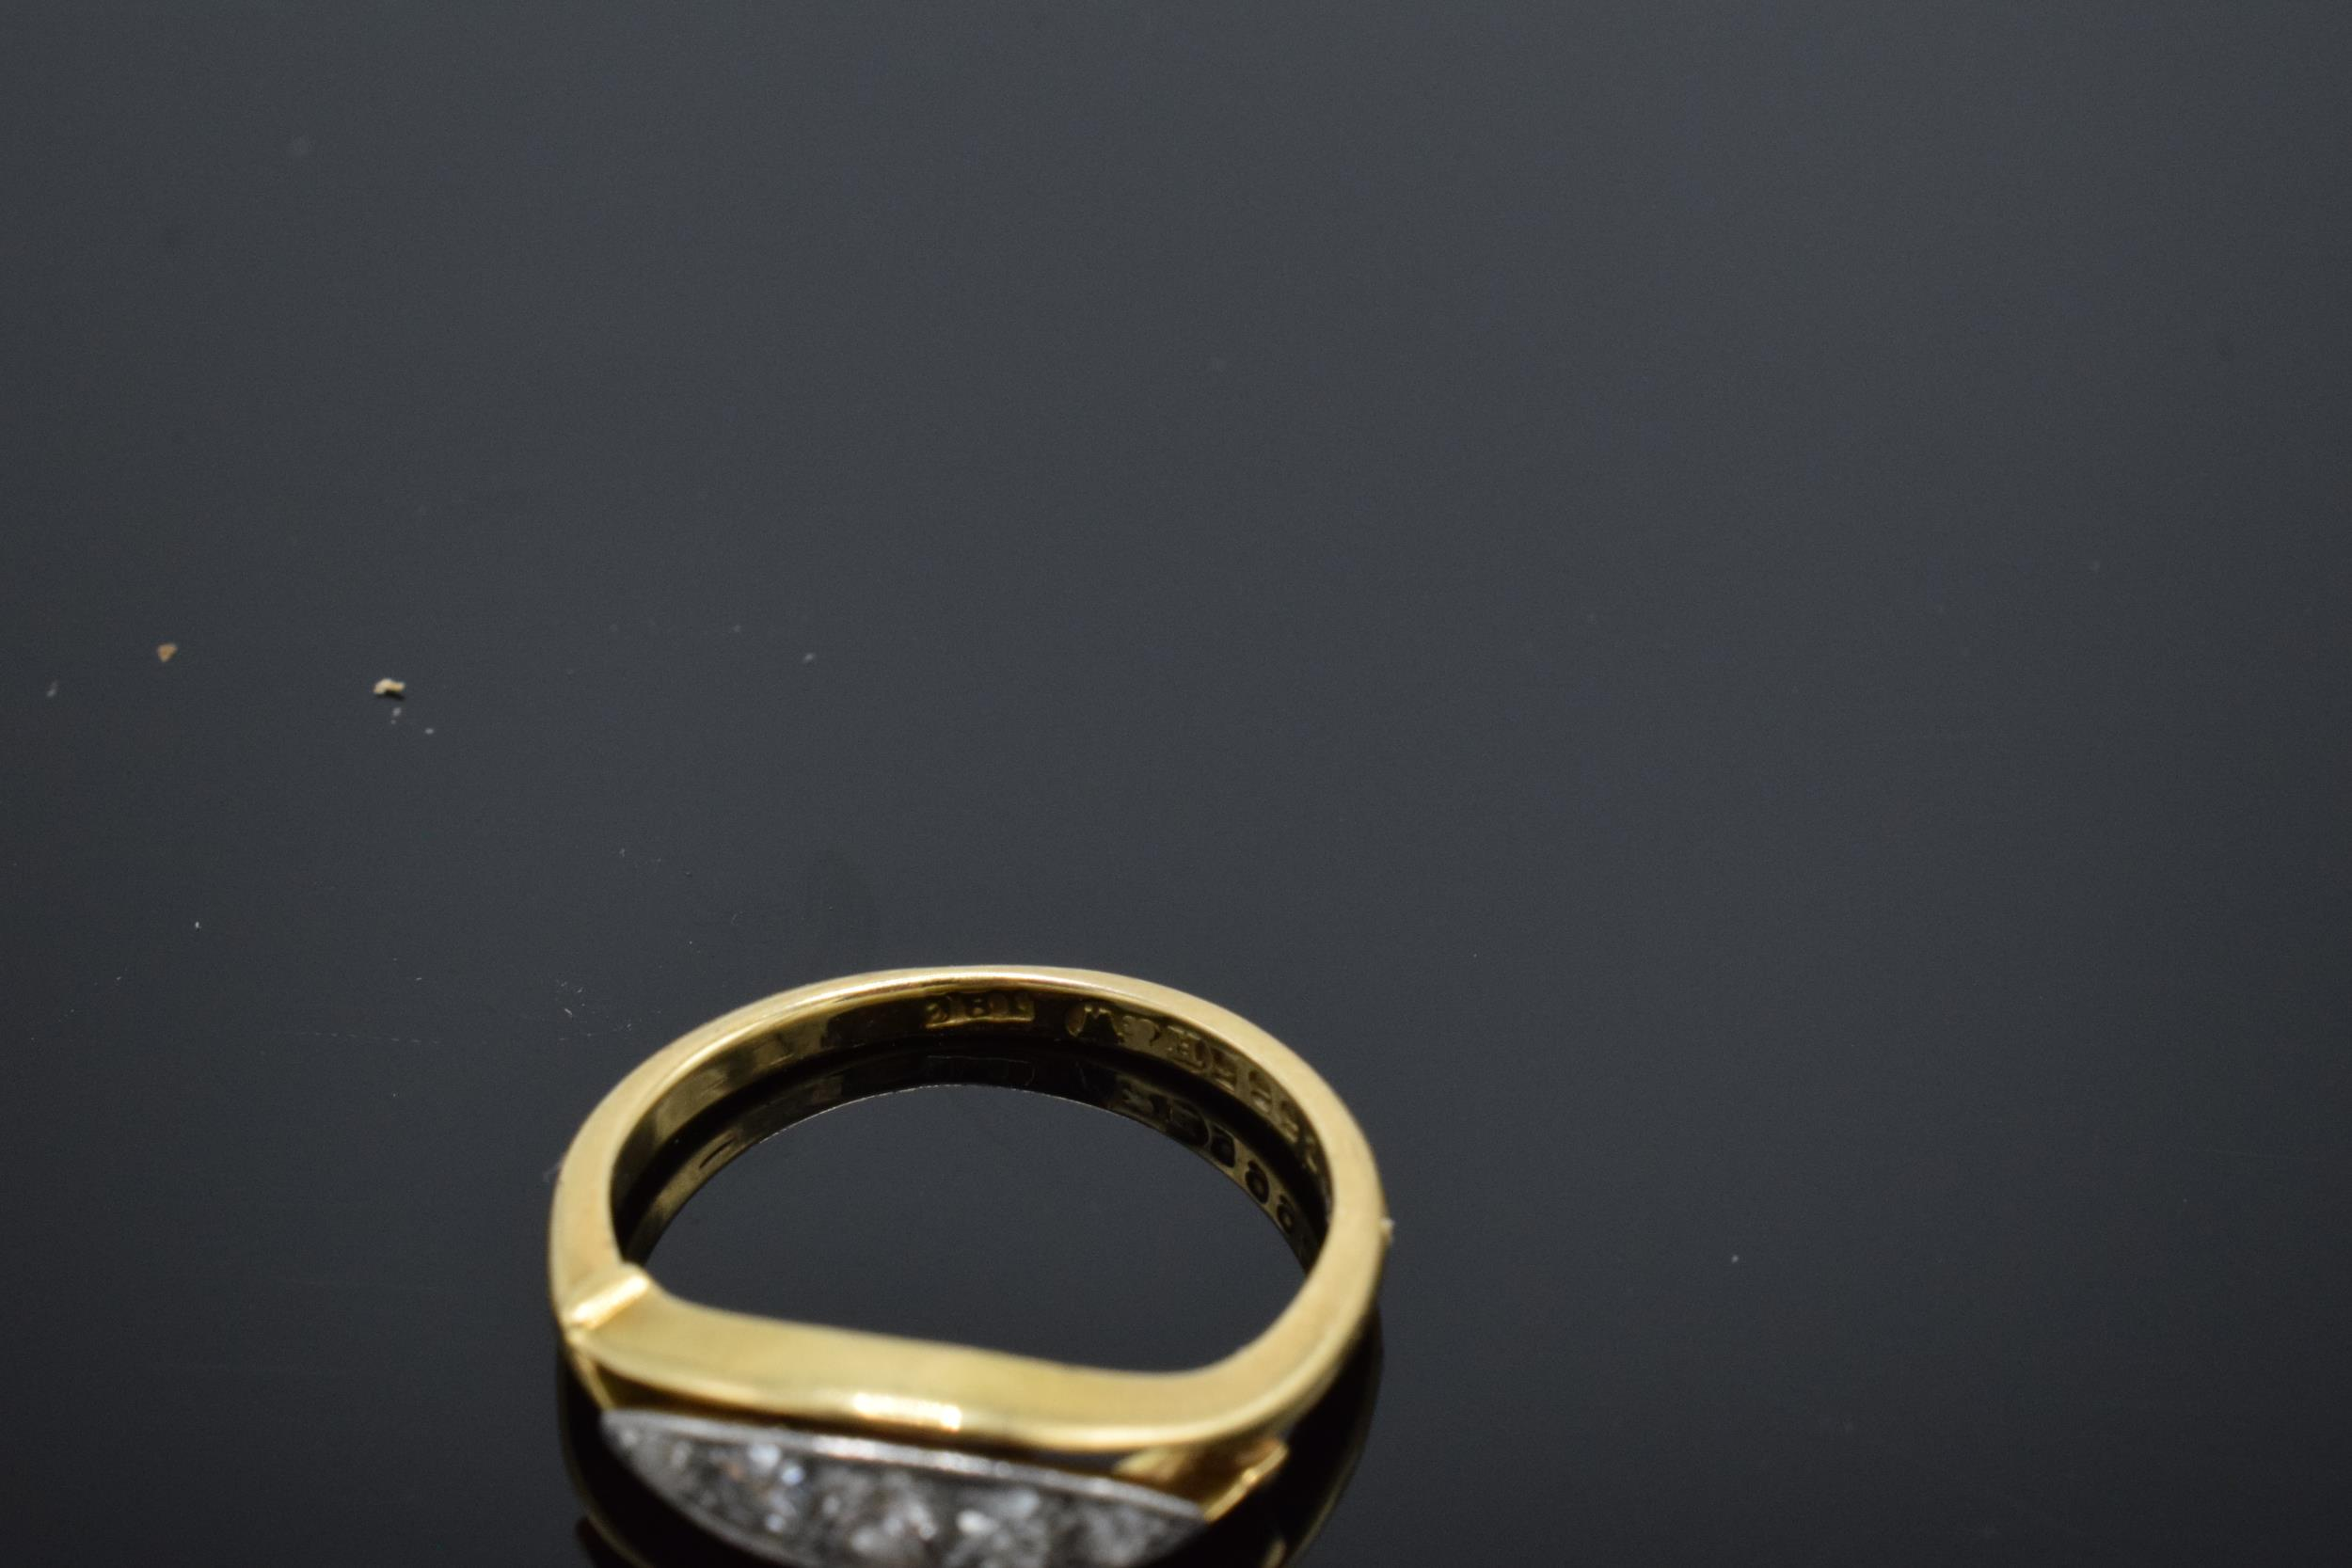 18ct gold ring set with 5 diamonds. UK size K/L. 2.7 grams. In good condition. - Image 3 of 3